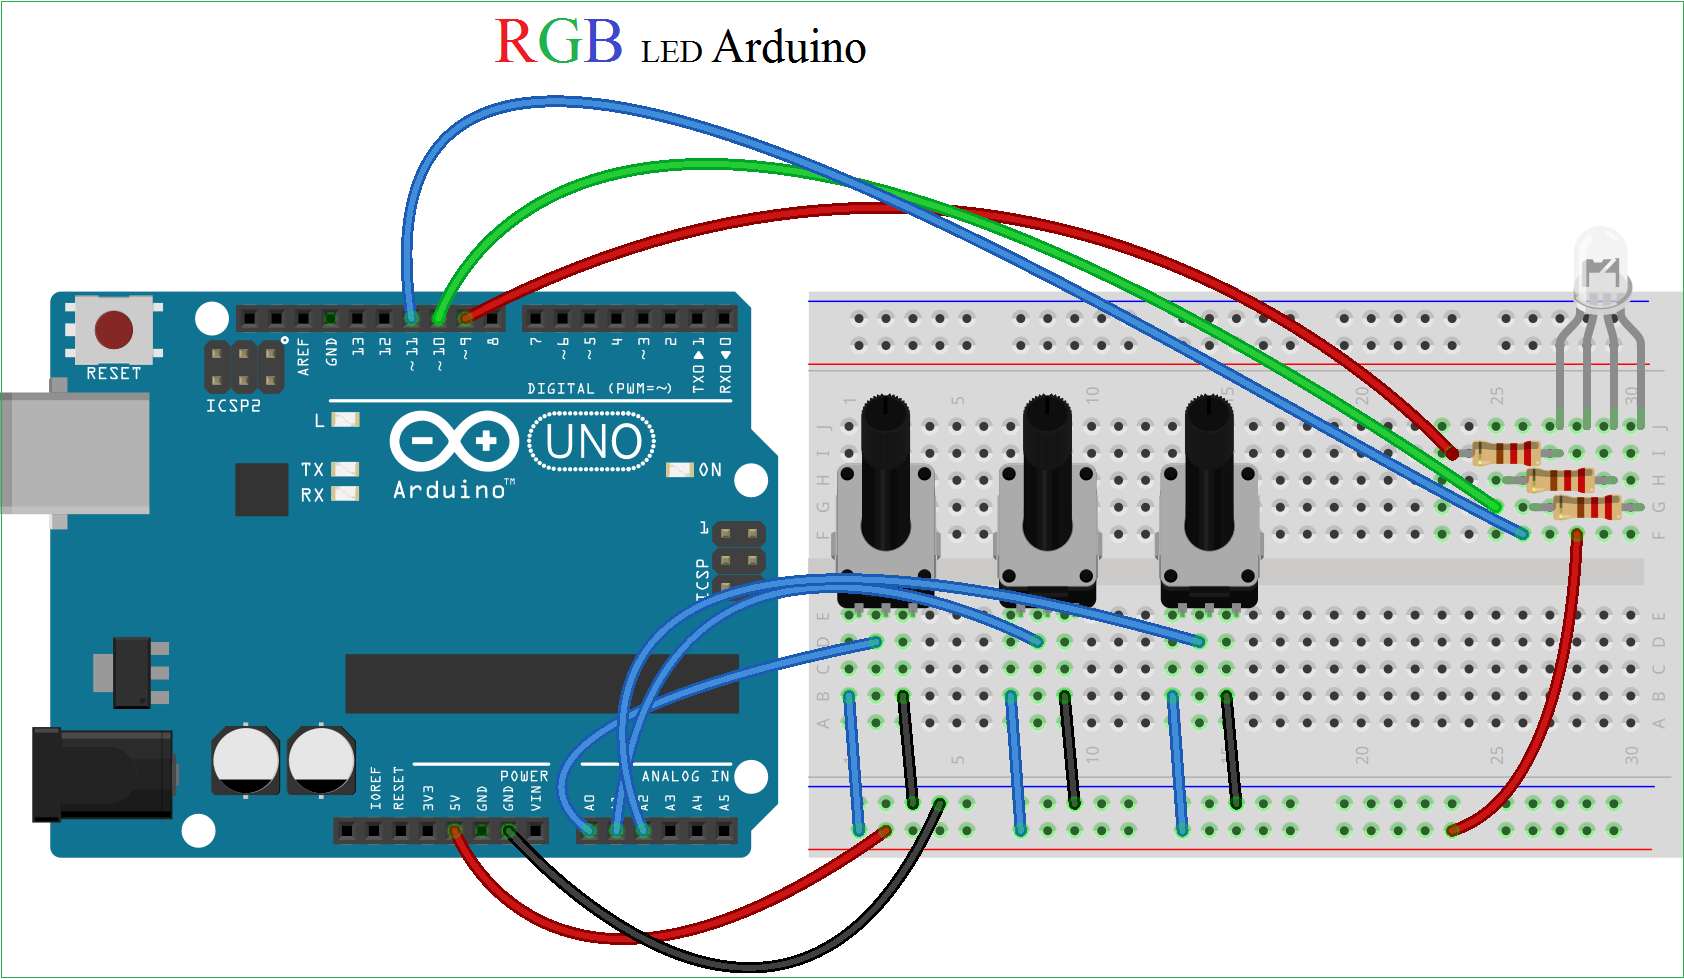 Rgb Led Arduino Traffic Light Schematic Diagram Connect The Pin Common Anode Of To 5v Board And Red Green Blue Terminals Digital Pins D9